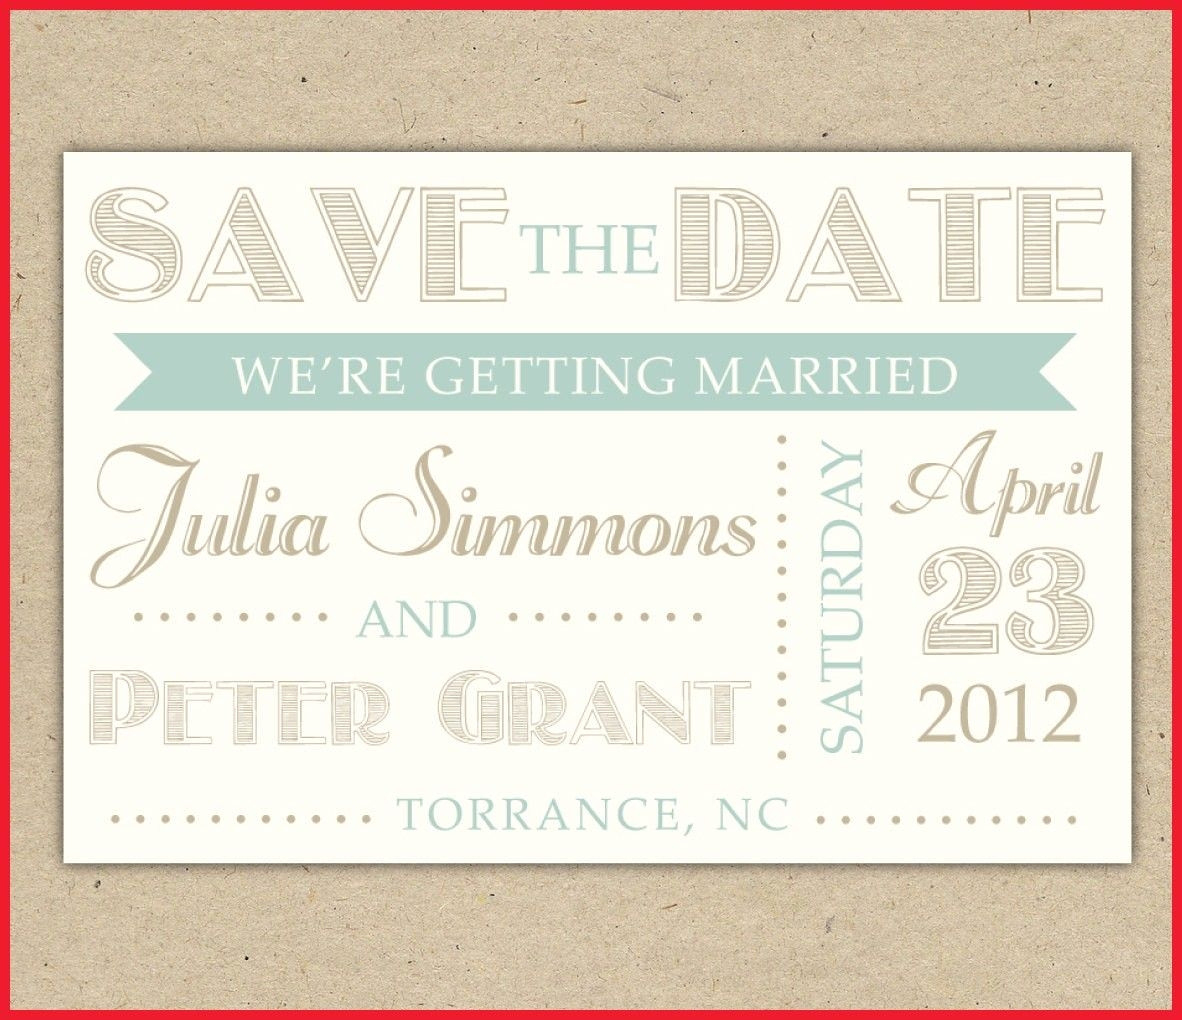 Elegant Free Printable Save The Date Invitation Templates Image Of - Free Printable Save The Date Invitation Templates